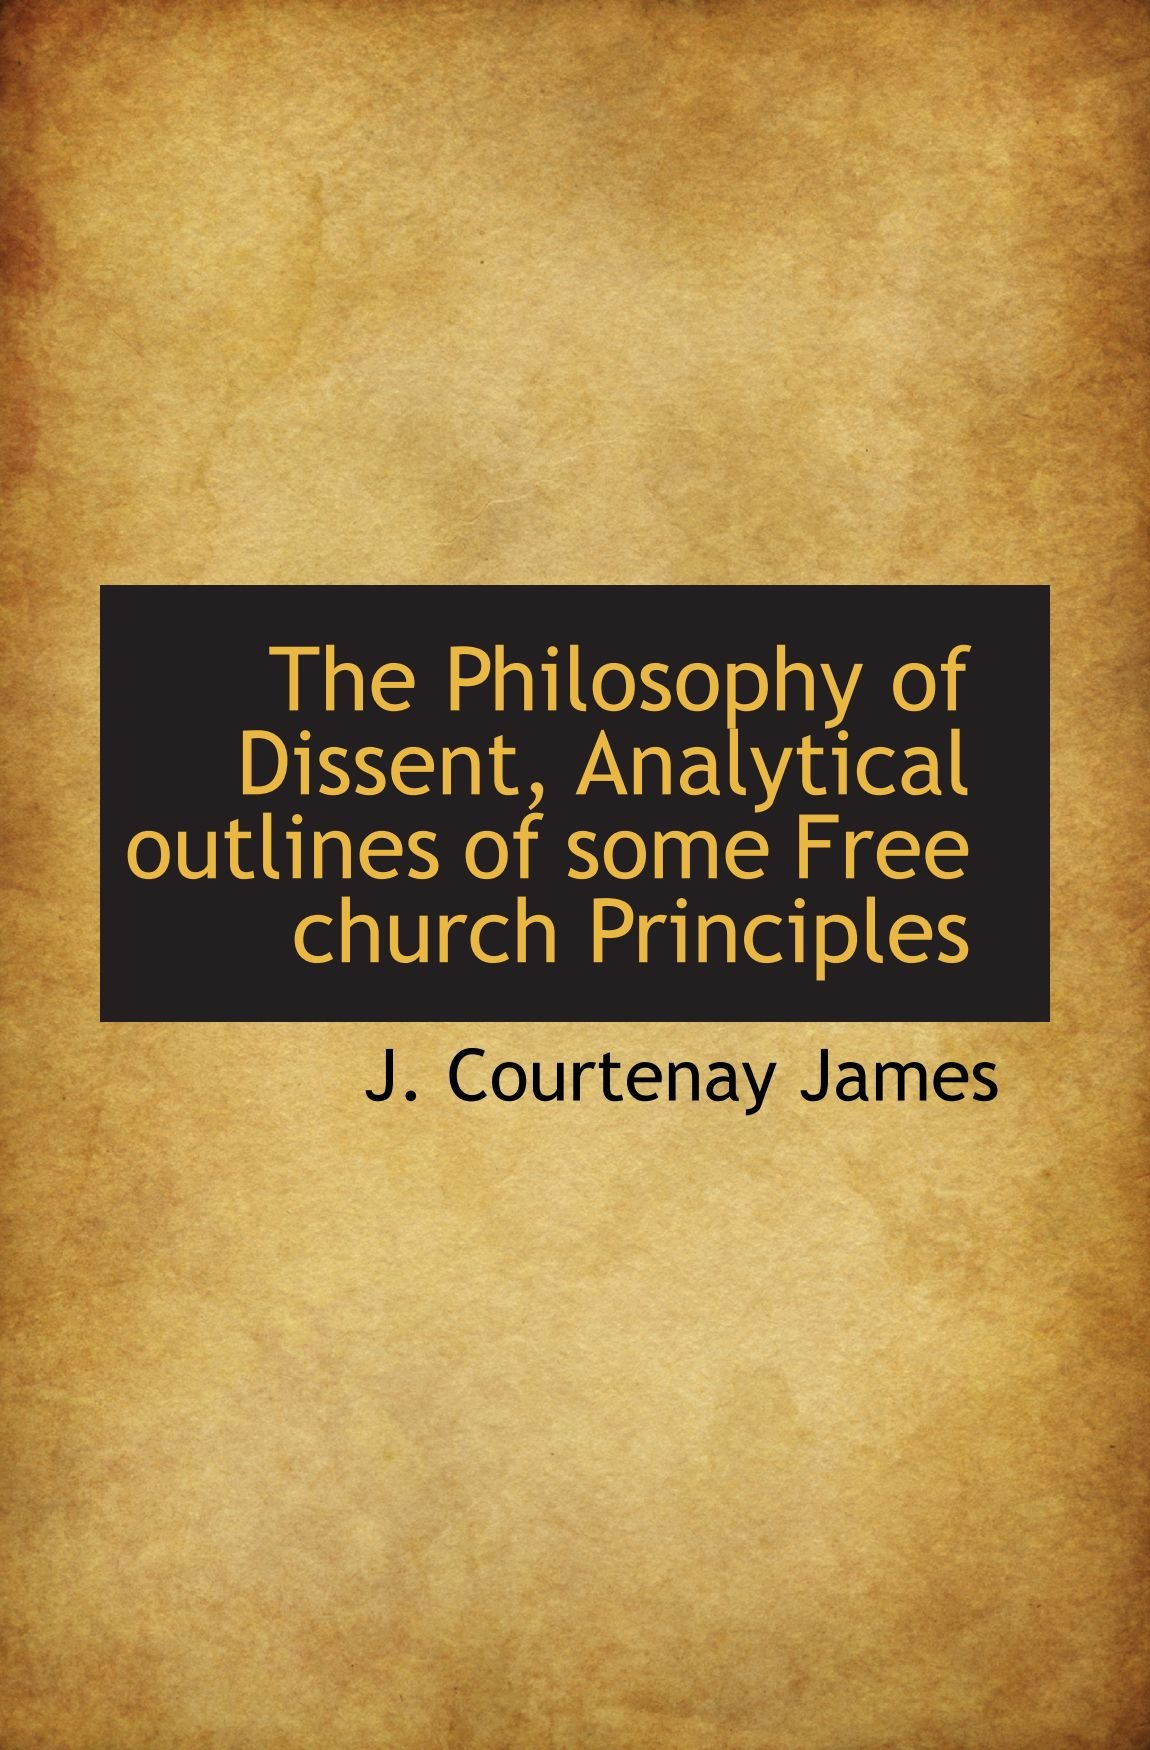 Read Online The Philosophy of Dissent, Analytical outlines of some Free church Principles PDF